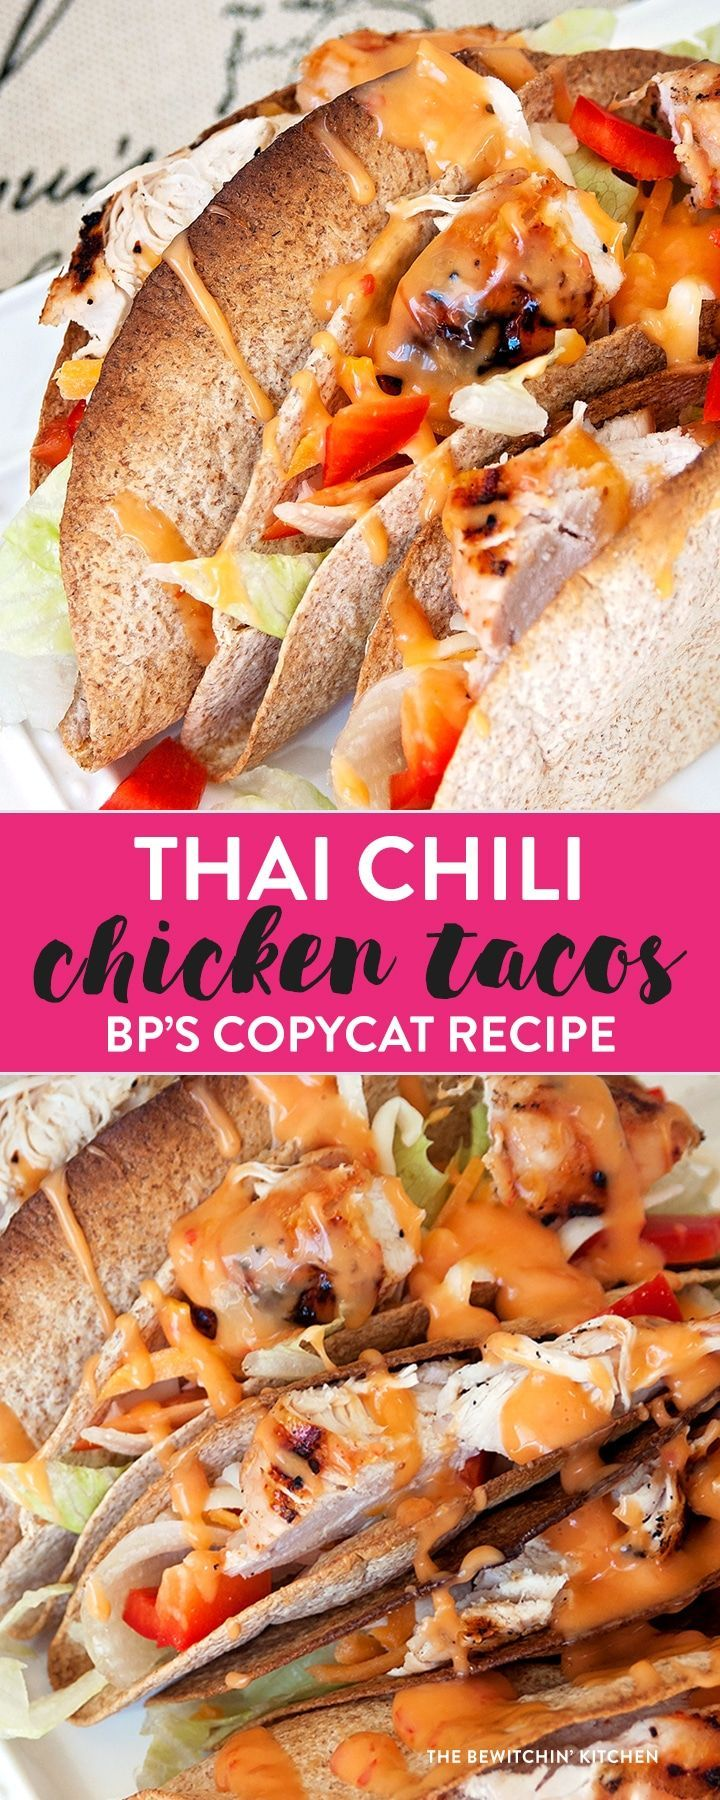 Thai Chili Chicken Tacos recipe - This healthy taco recipe was inspired by one of my favorite meals at Boston Pizza. It's an easy meal to throw together - perfect for summer and I love the thai chili mayo combo!